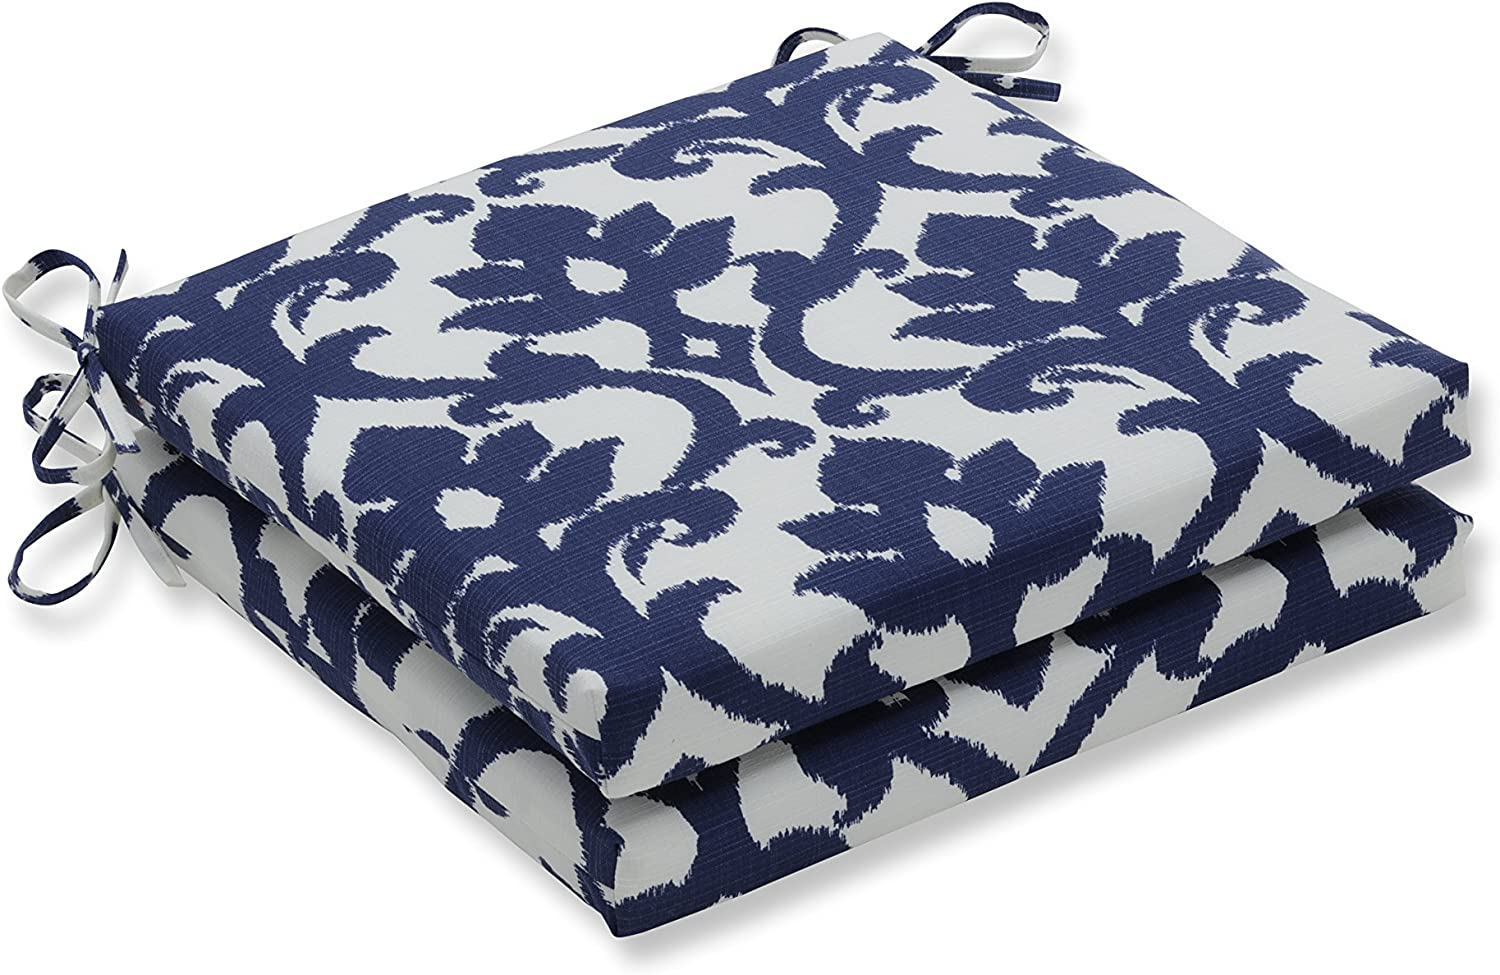 Pillow Perfect Indoor Outdoor Bosco Squared Seat Cushion, Navy, Set of 2, bluee, 20 in. L X 20 in. W X 3 in. D